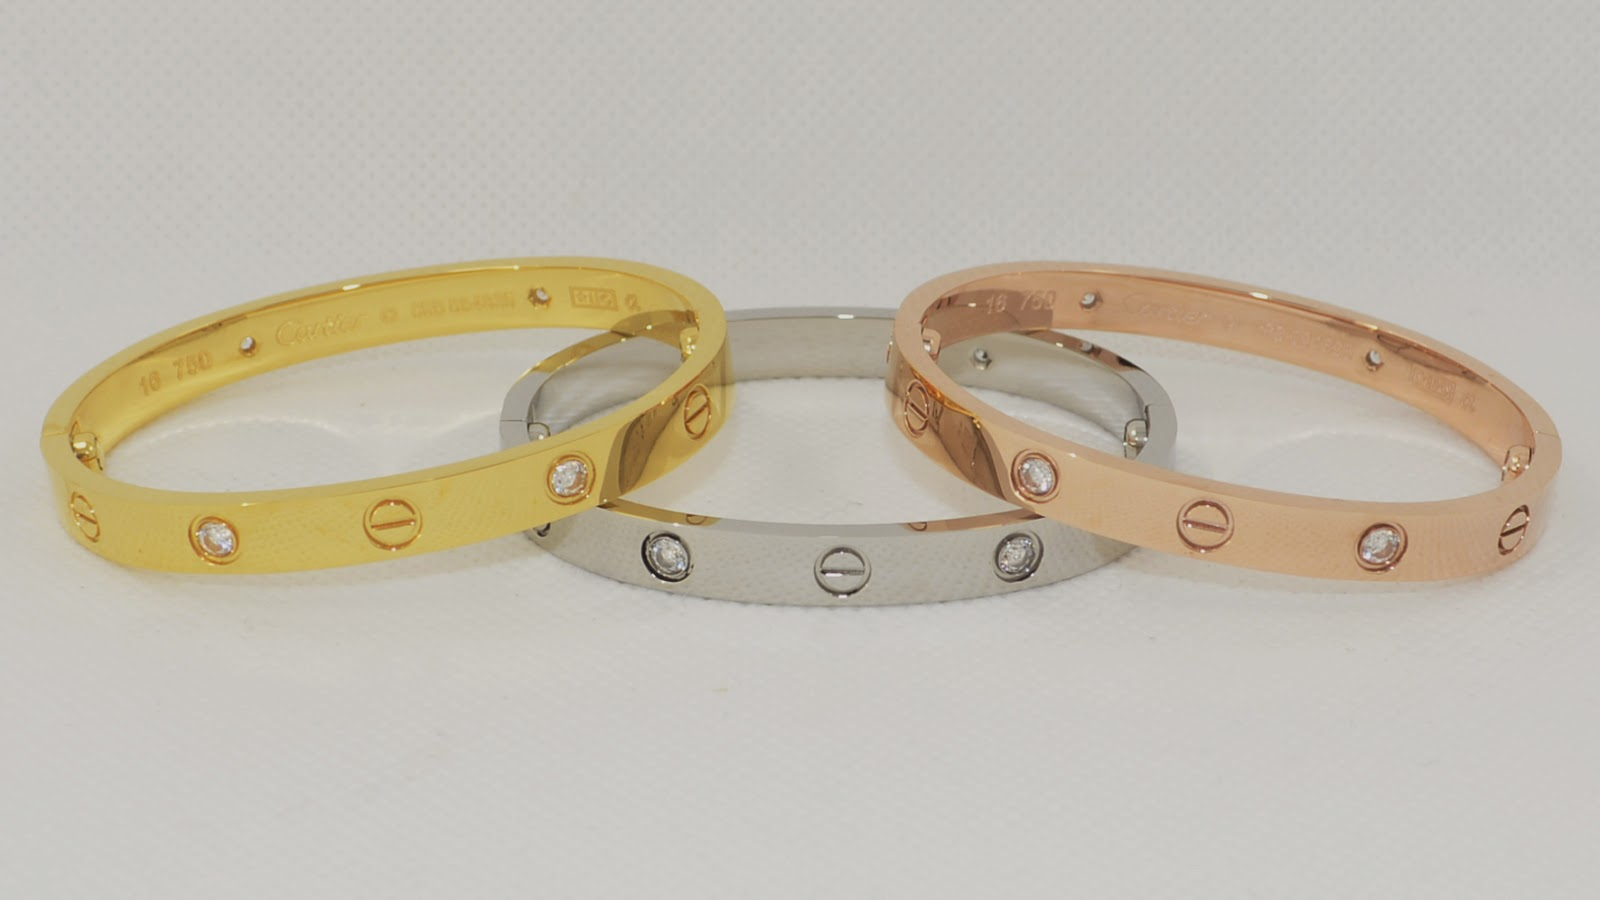 Buy Top quality replica Cartier Love bracelet with only ...  Buy Top quality...